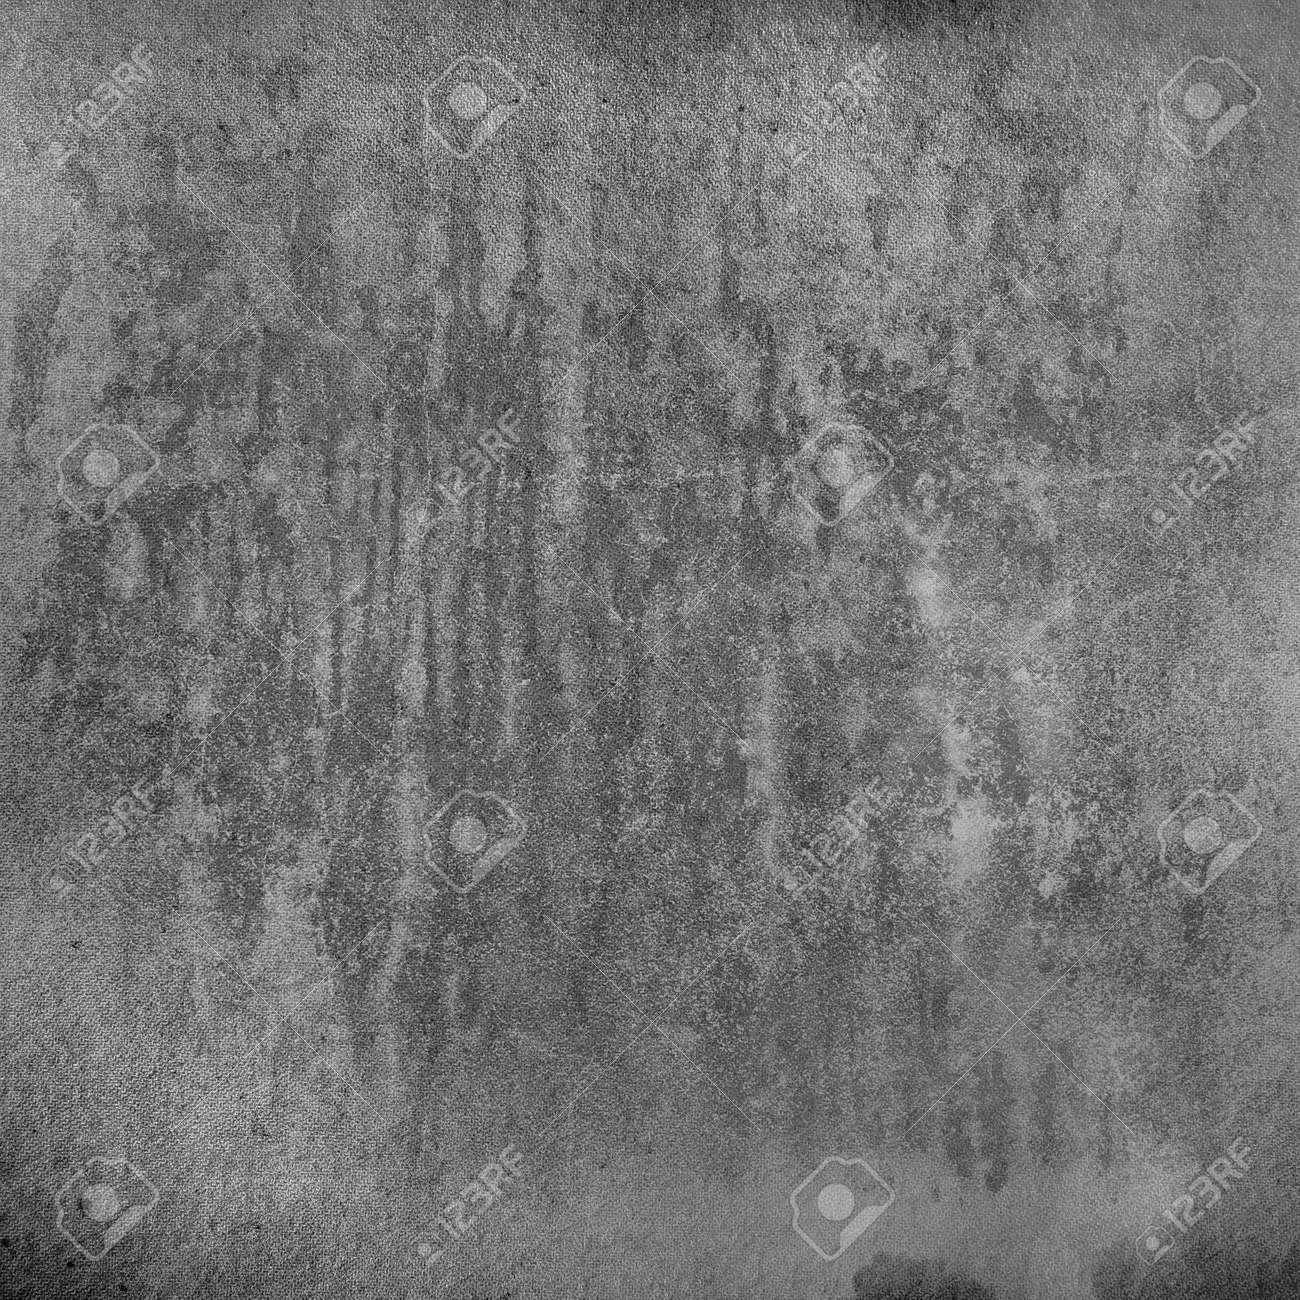 Grunge Paint Texture On Old Canvas Background Grainy Texture Stock